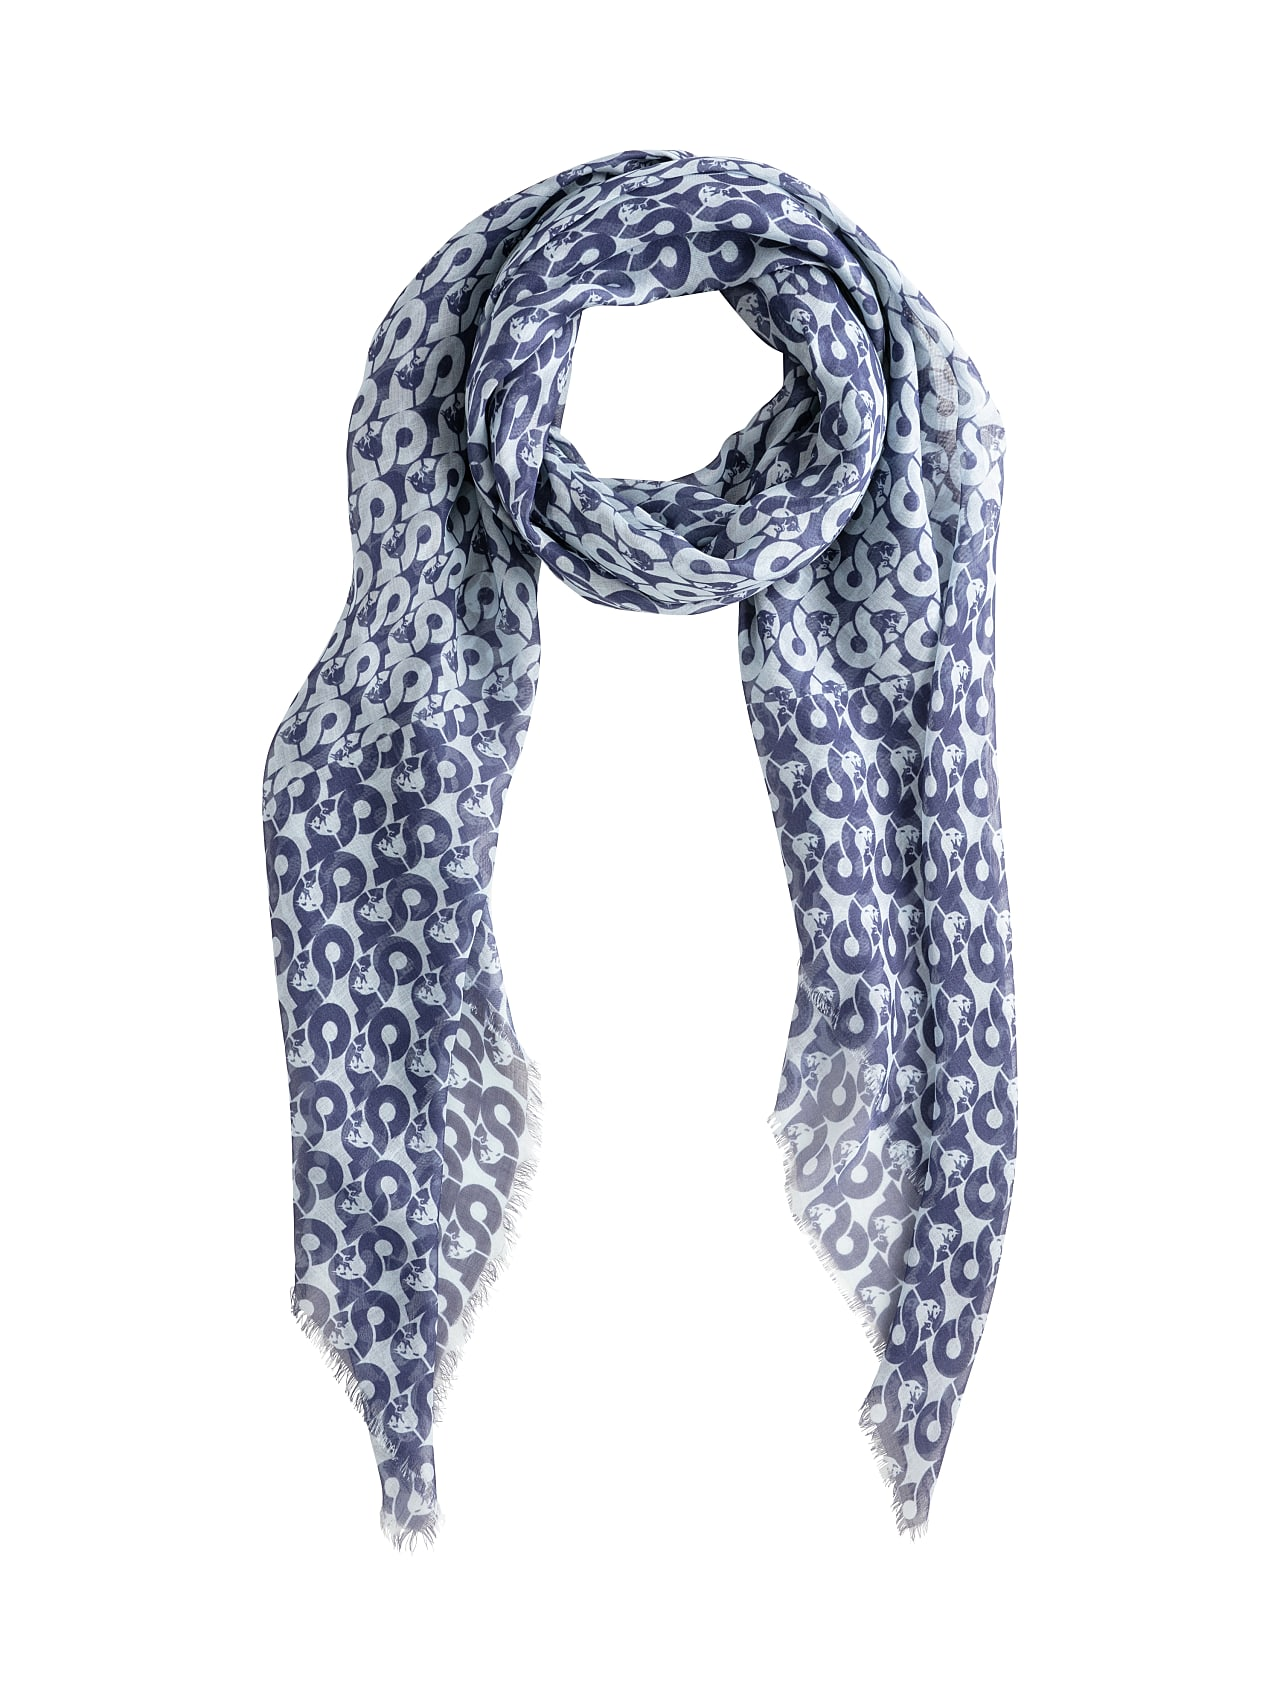 ANZA V4.Y4.01 All Over Print Scarf blue / other Back Alpha Tauri